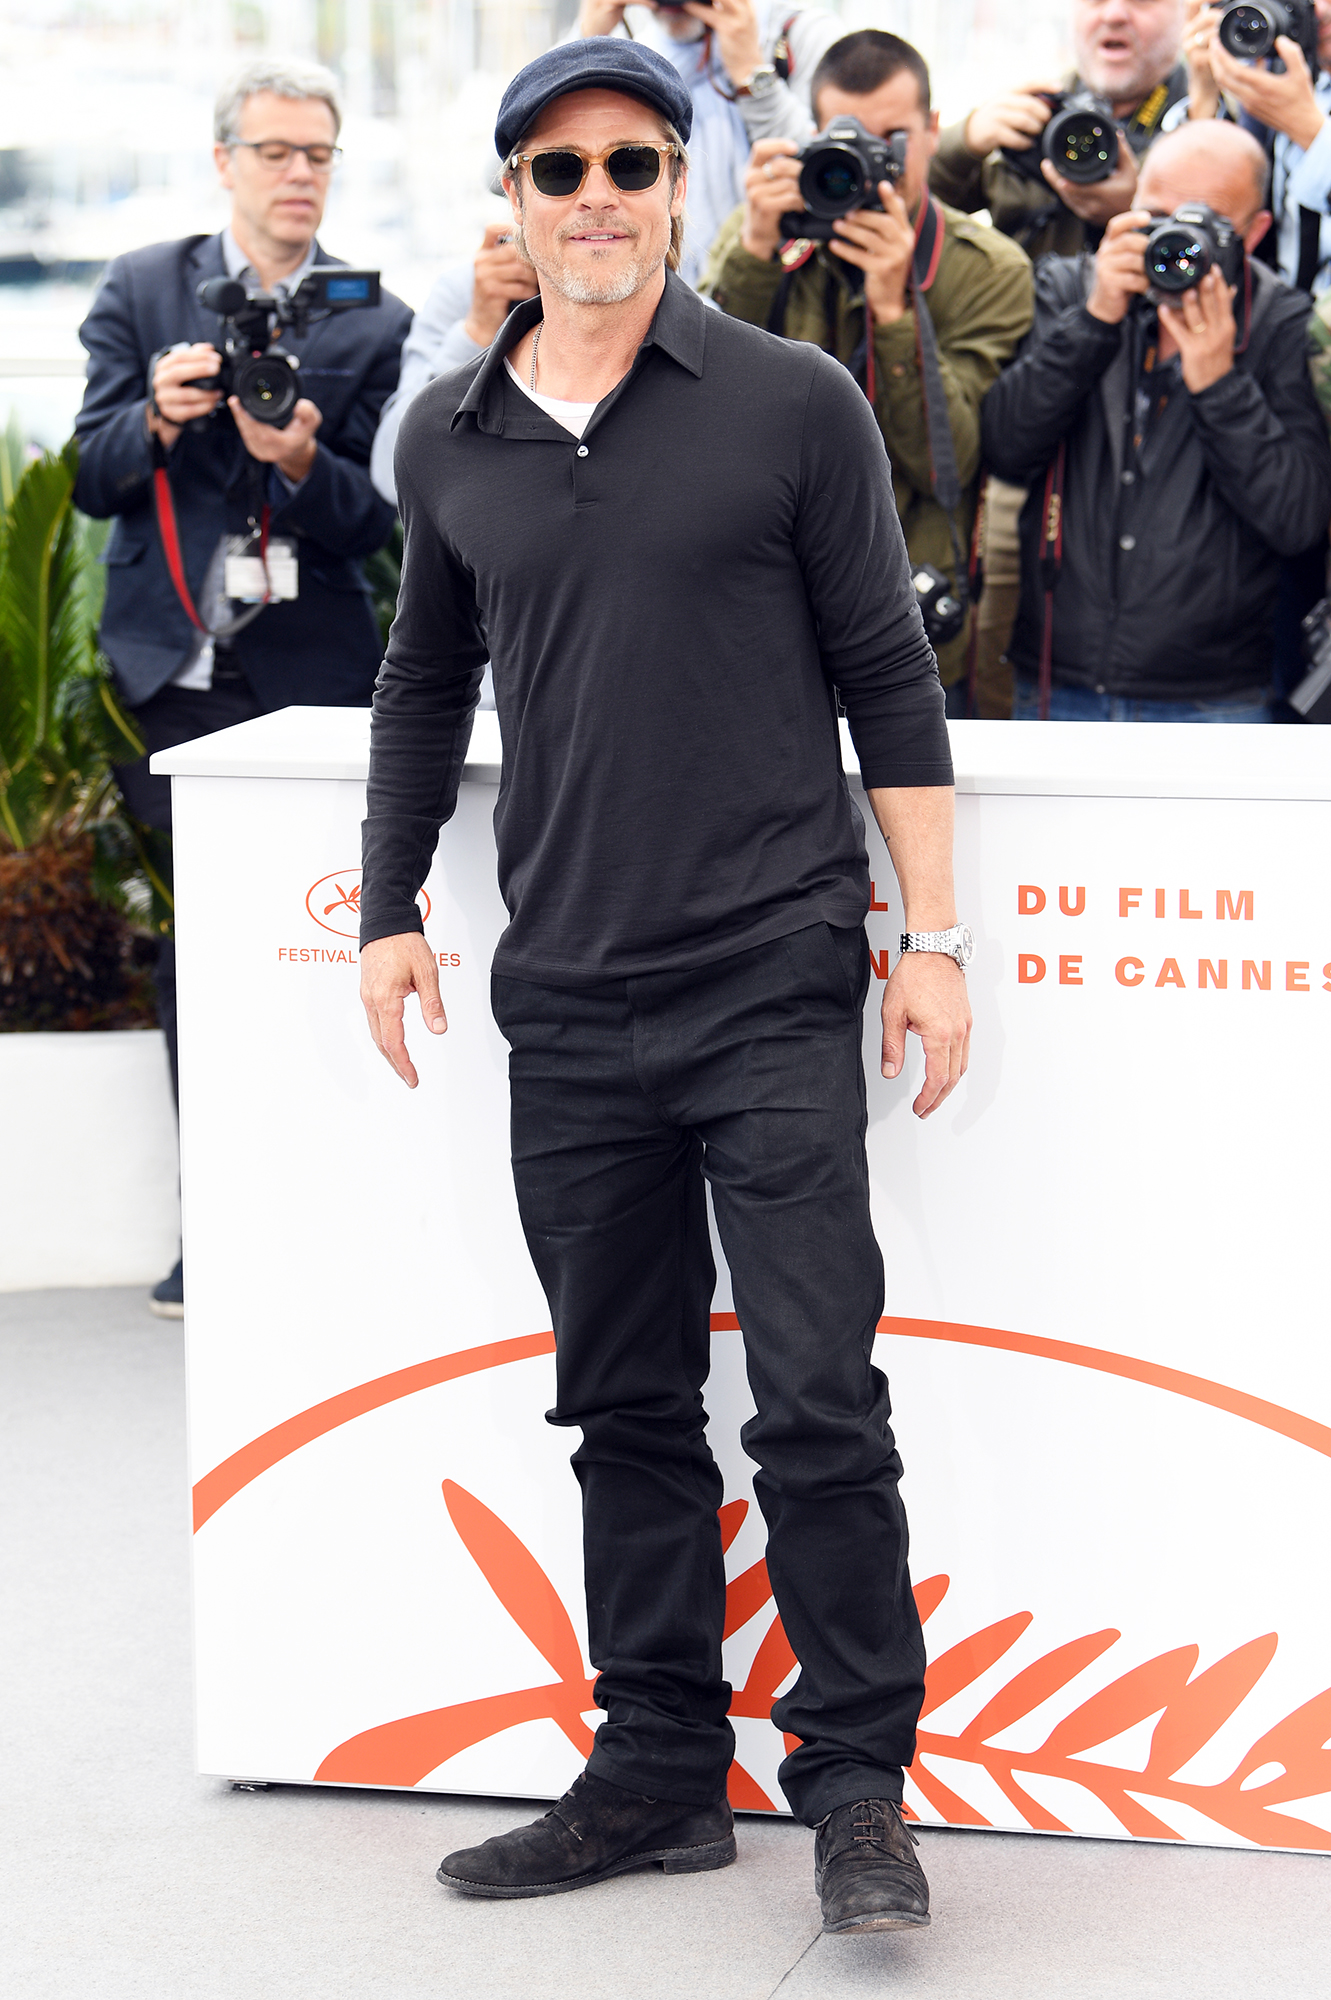 Brad Pitt - At the Once Upon a Time in Hollywood Cannes Film Festival photo-call on May 22, 2019, the actor kept things casual in a black polo, jeans and page boy cap.